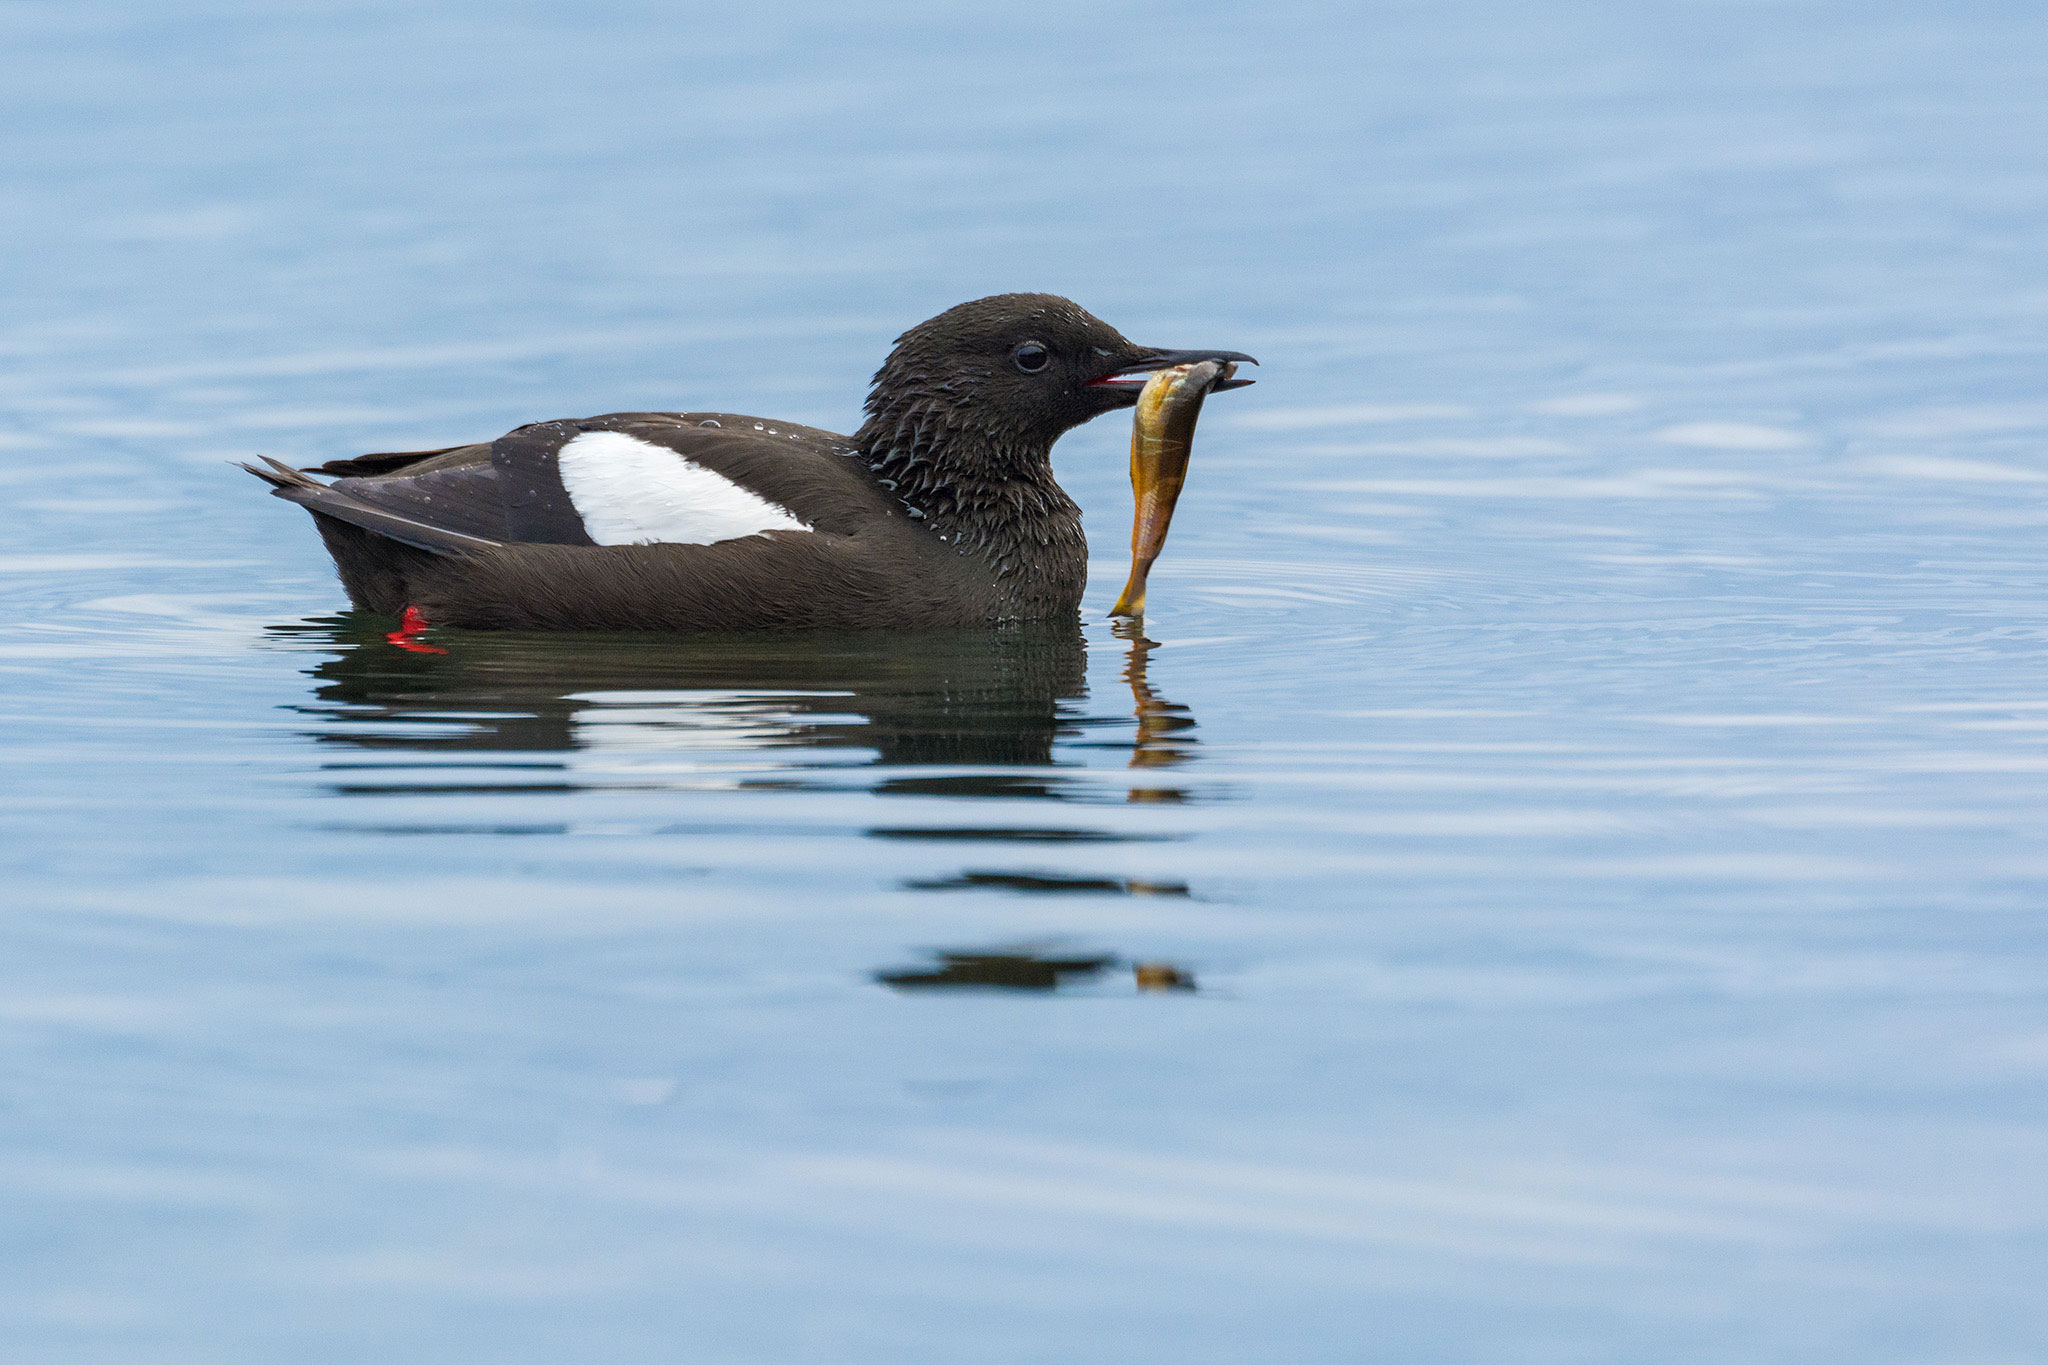 A Black Guillemot perched at the water's edge on Flatey Island in Western Iceland. E.J. Peiker